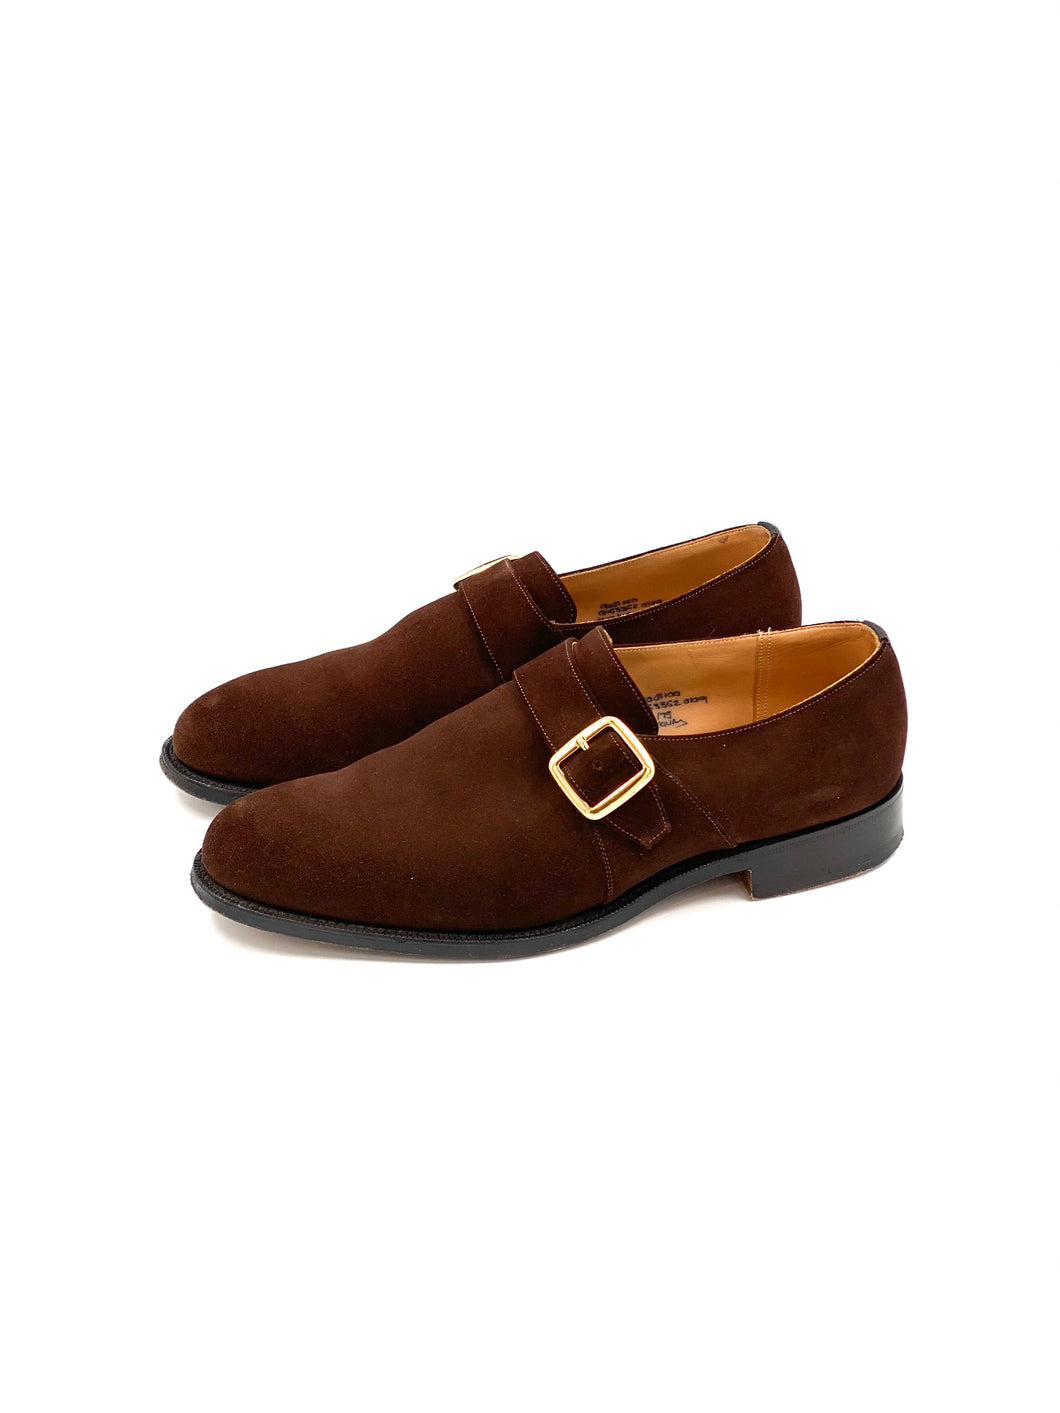 Church's Herren Wildleder Formal Business Slipper Schuhe Monkstrap odsey Braun